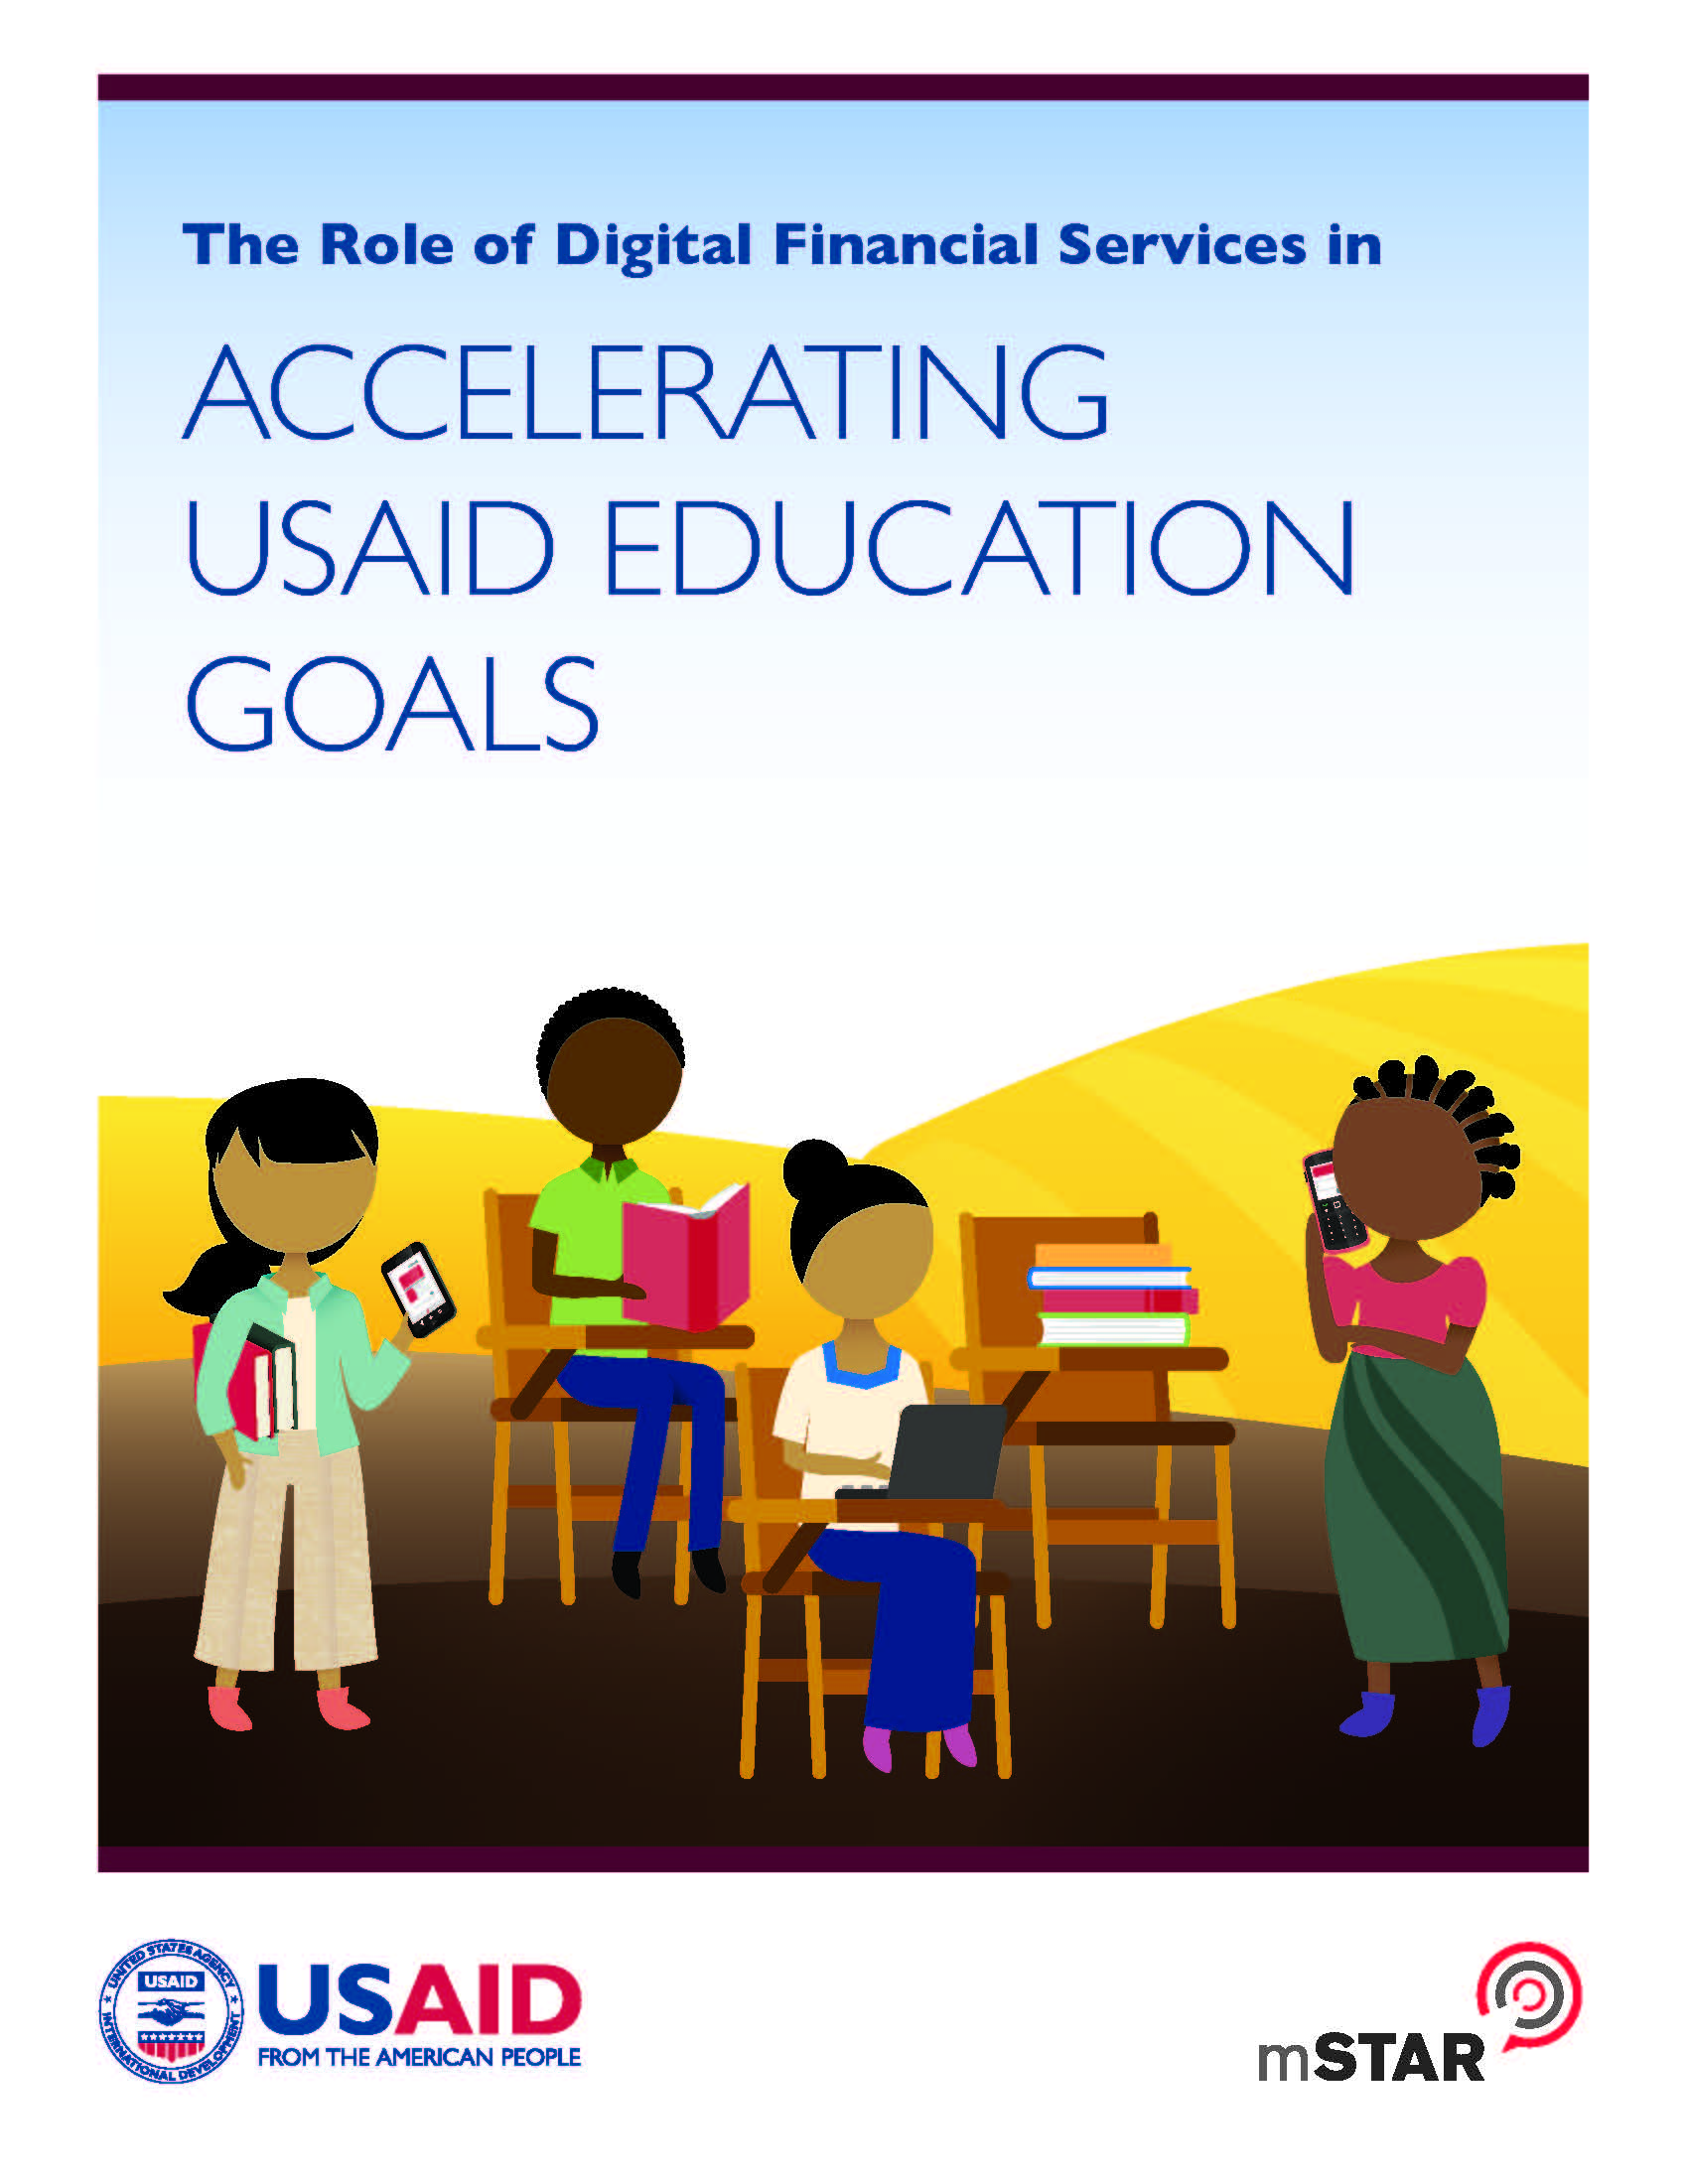 The Role of Digital Financial Services in Accelerating USAID Education Goals